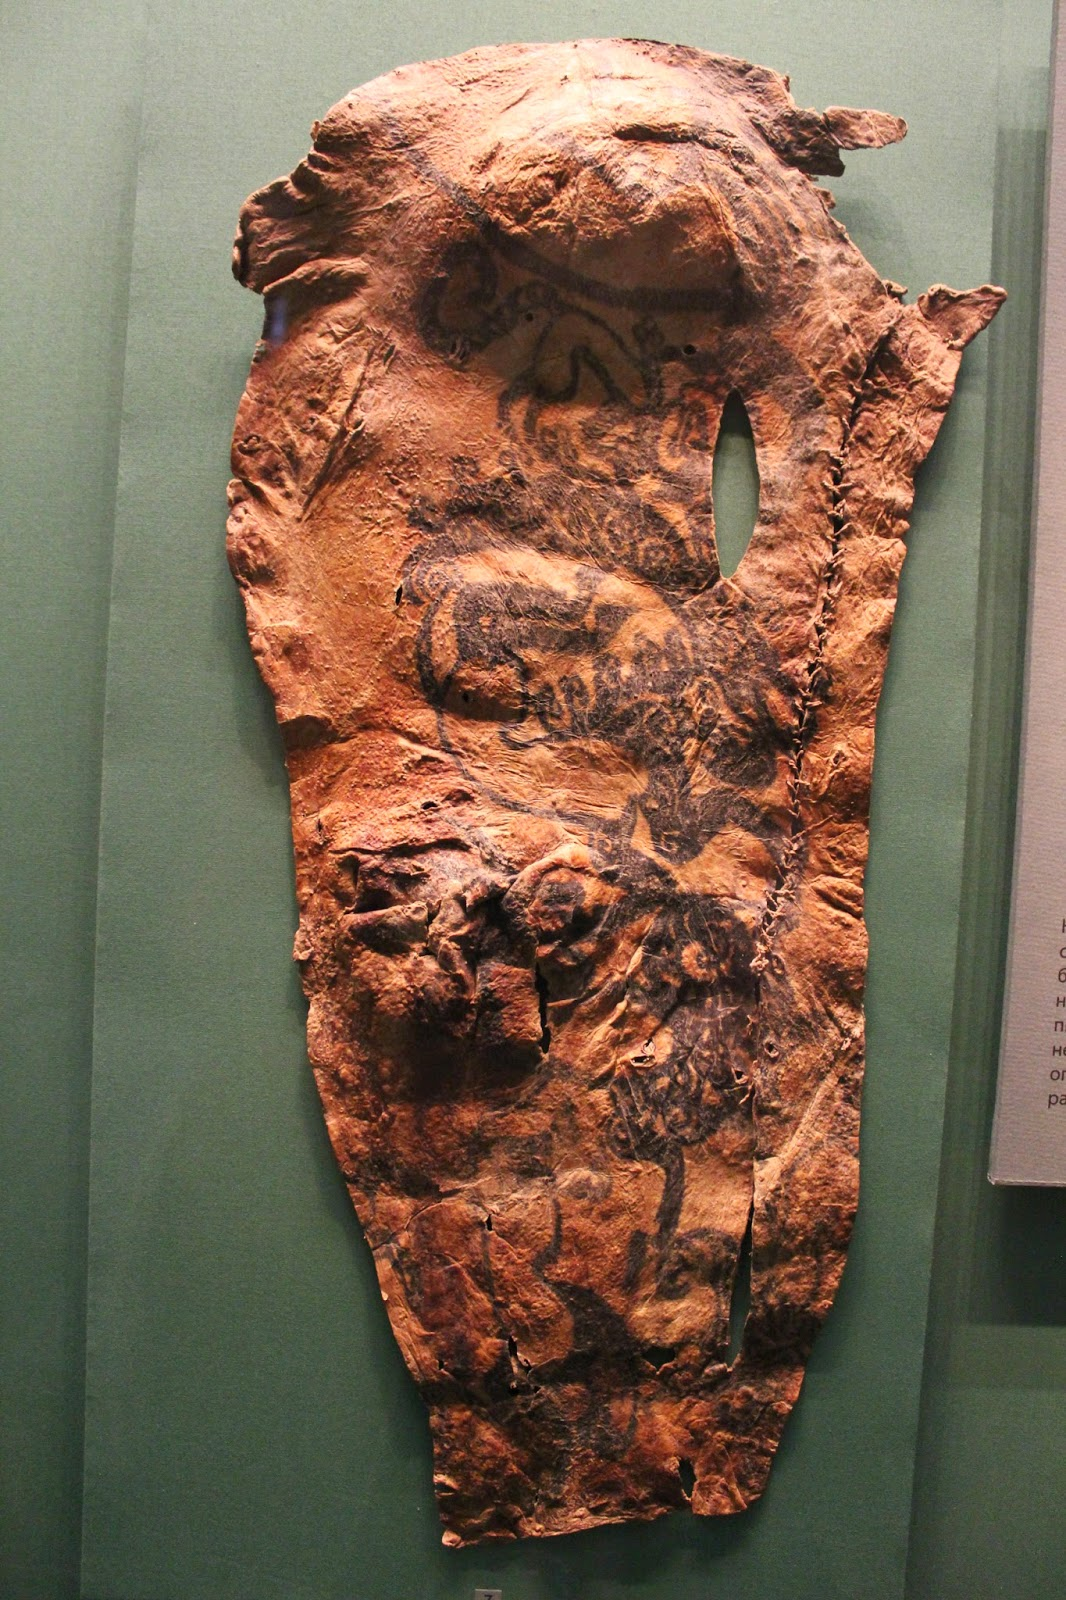 Mummy Tattoos From The Hermitage